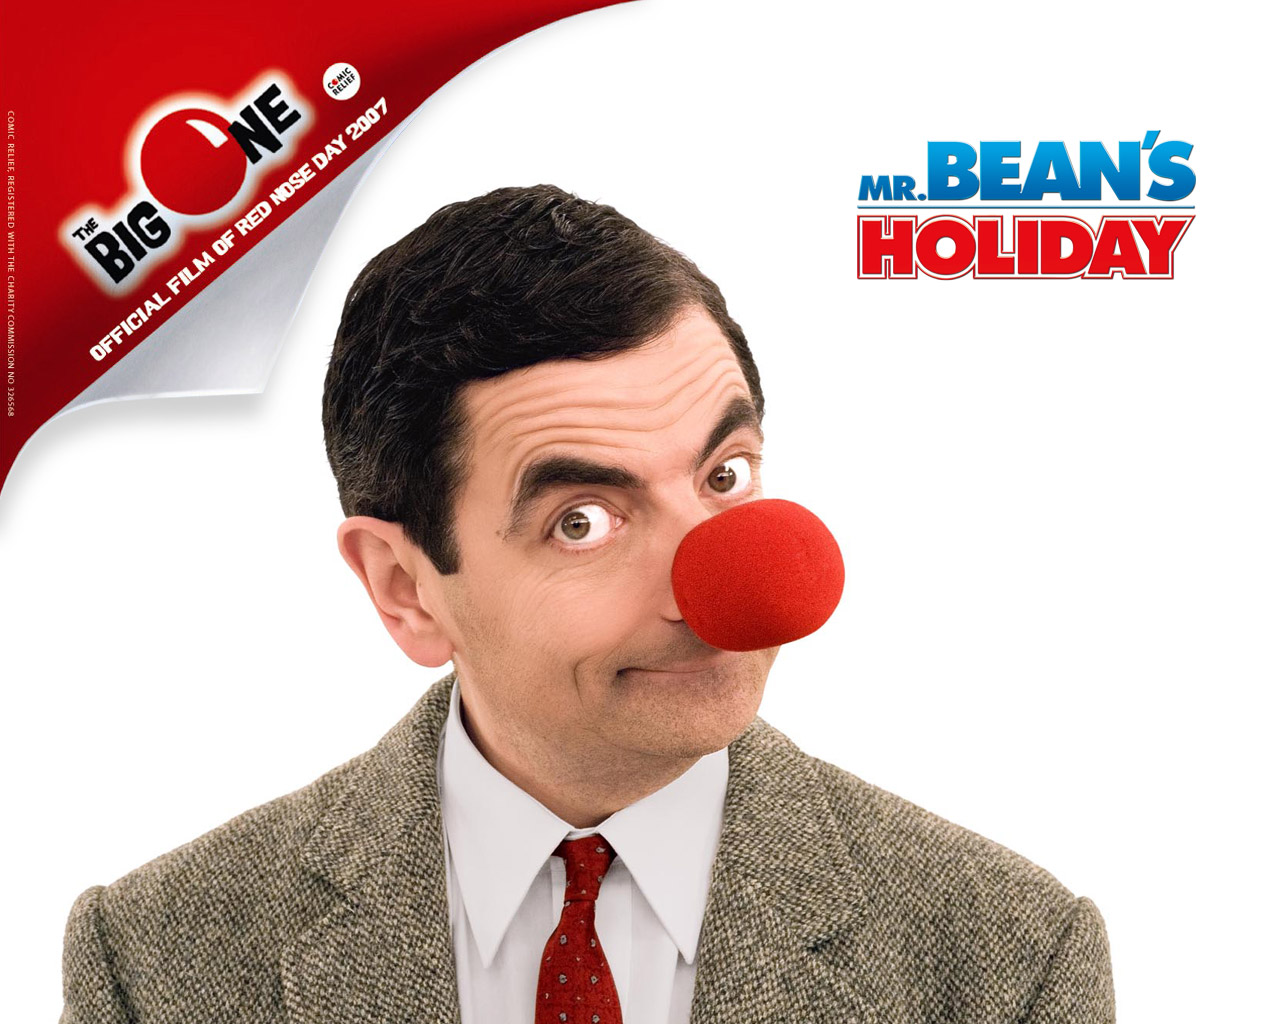 Mr bean mr bean red nose day